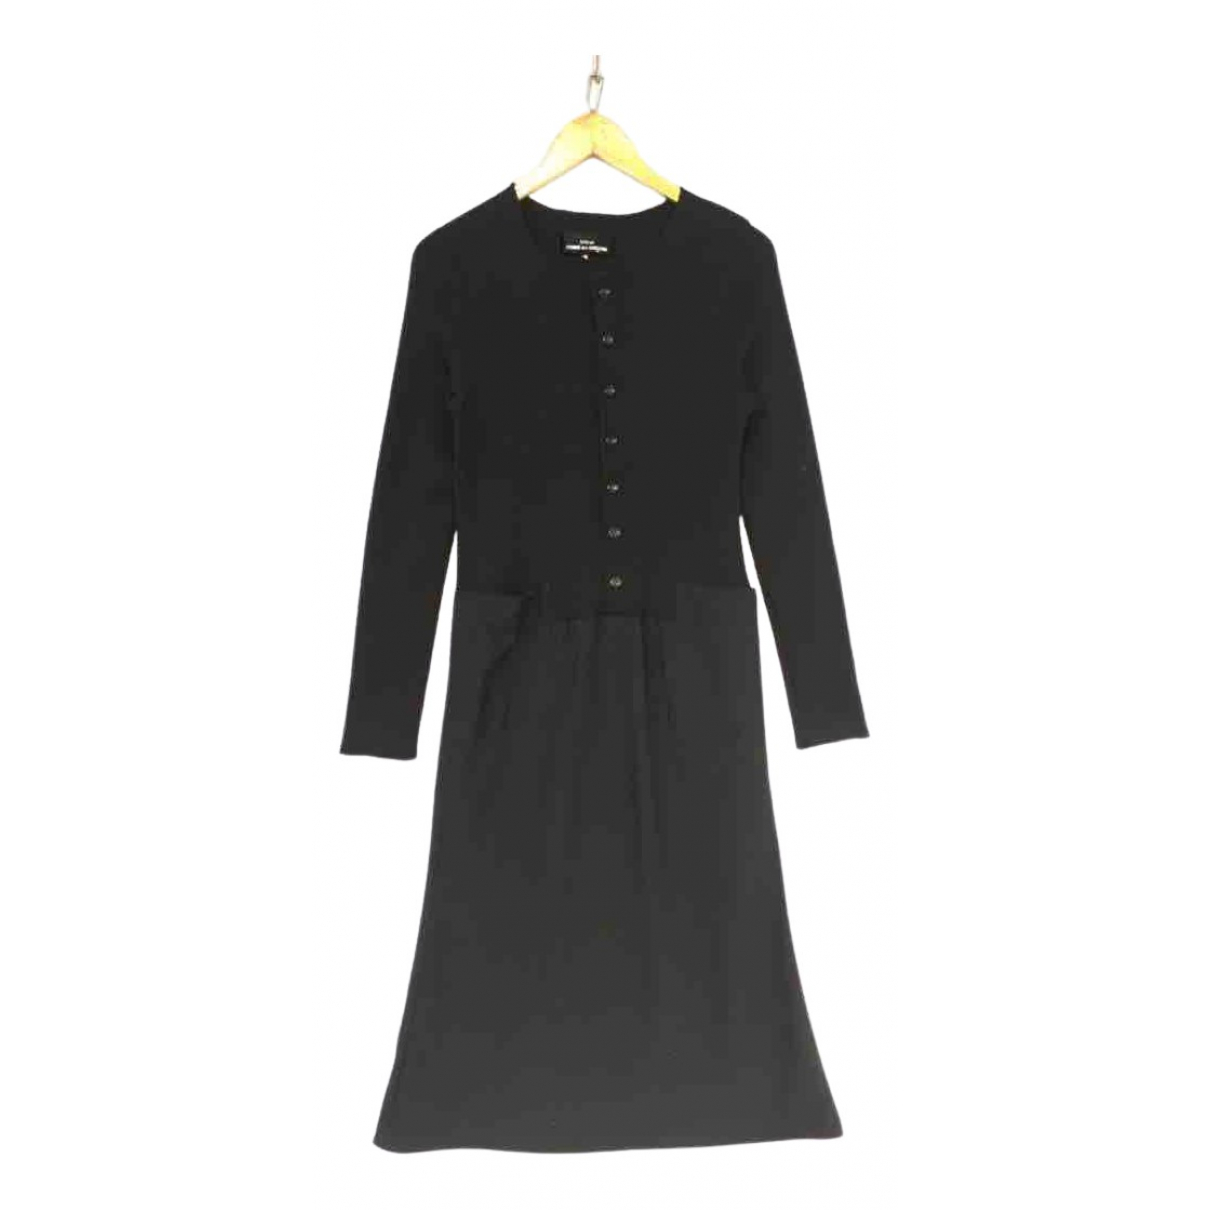 Comme Des Garcons \N Black Wool dress for Women M International